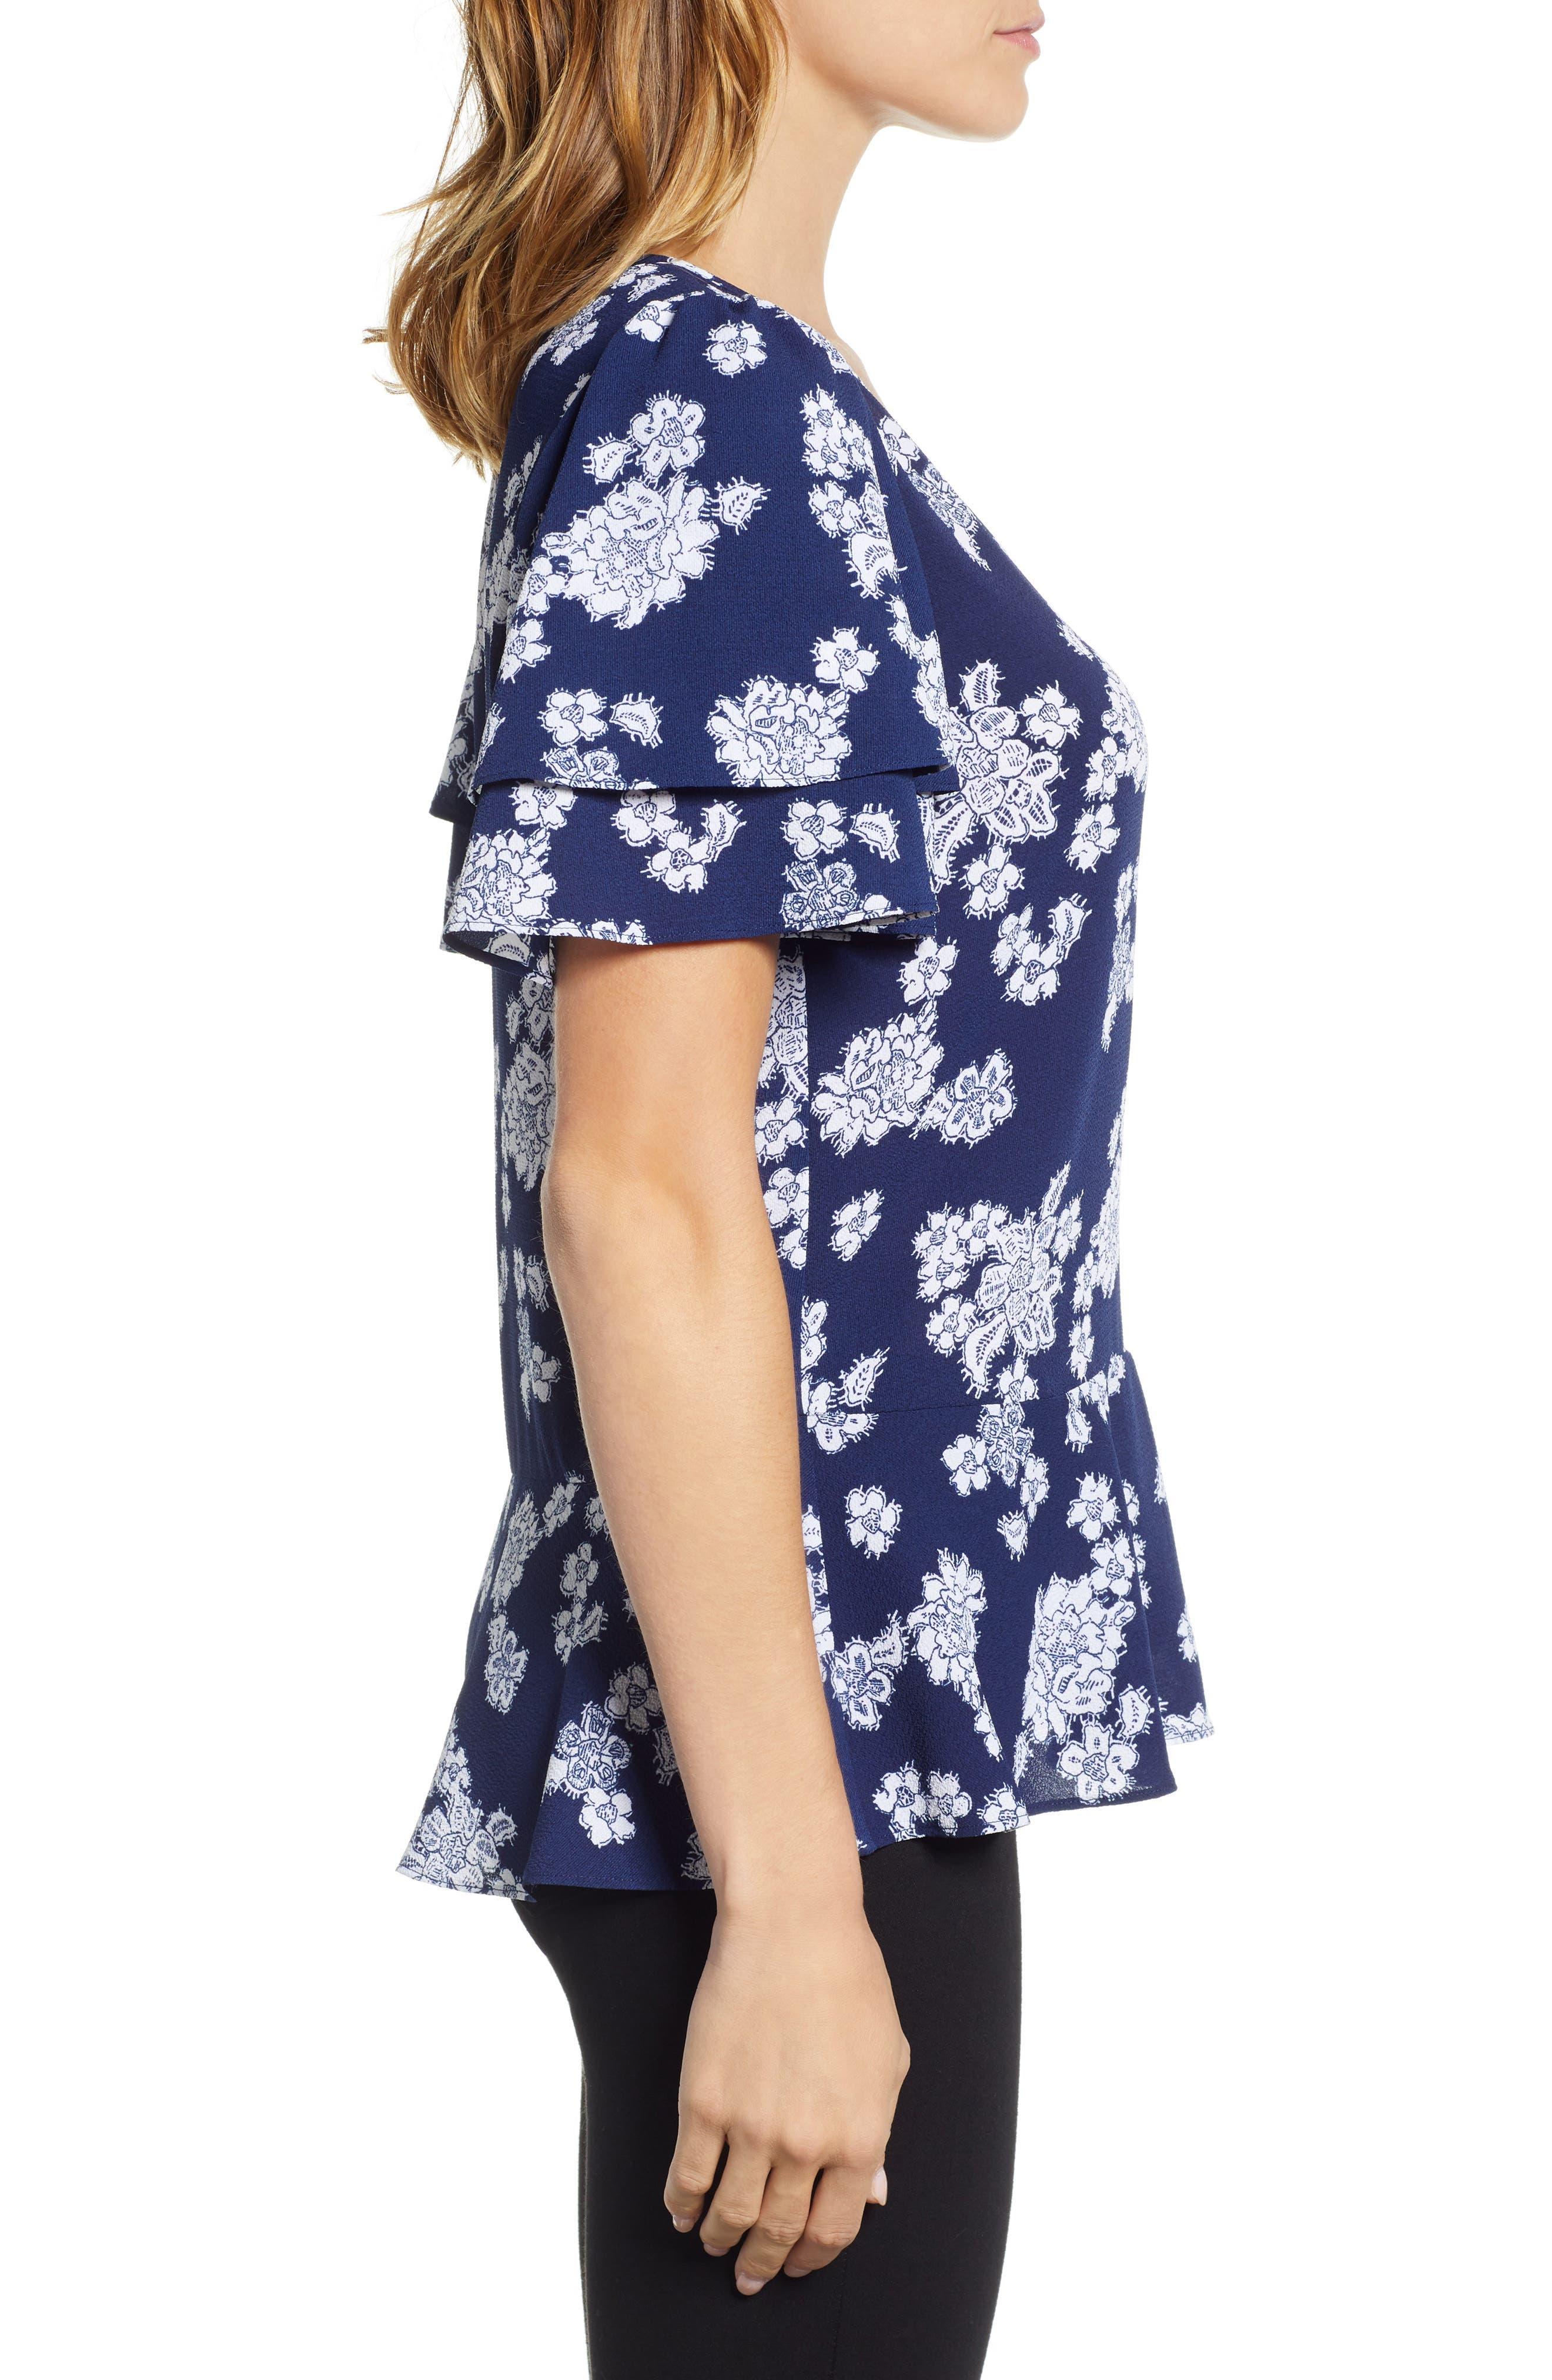 Tossed Lace Flowers Top,                             Alternate thumbnail 3, color,                             TRUE NAVY/ WHITE